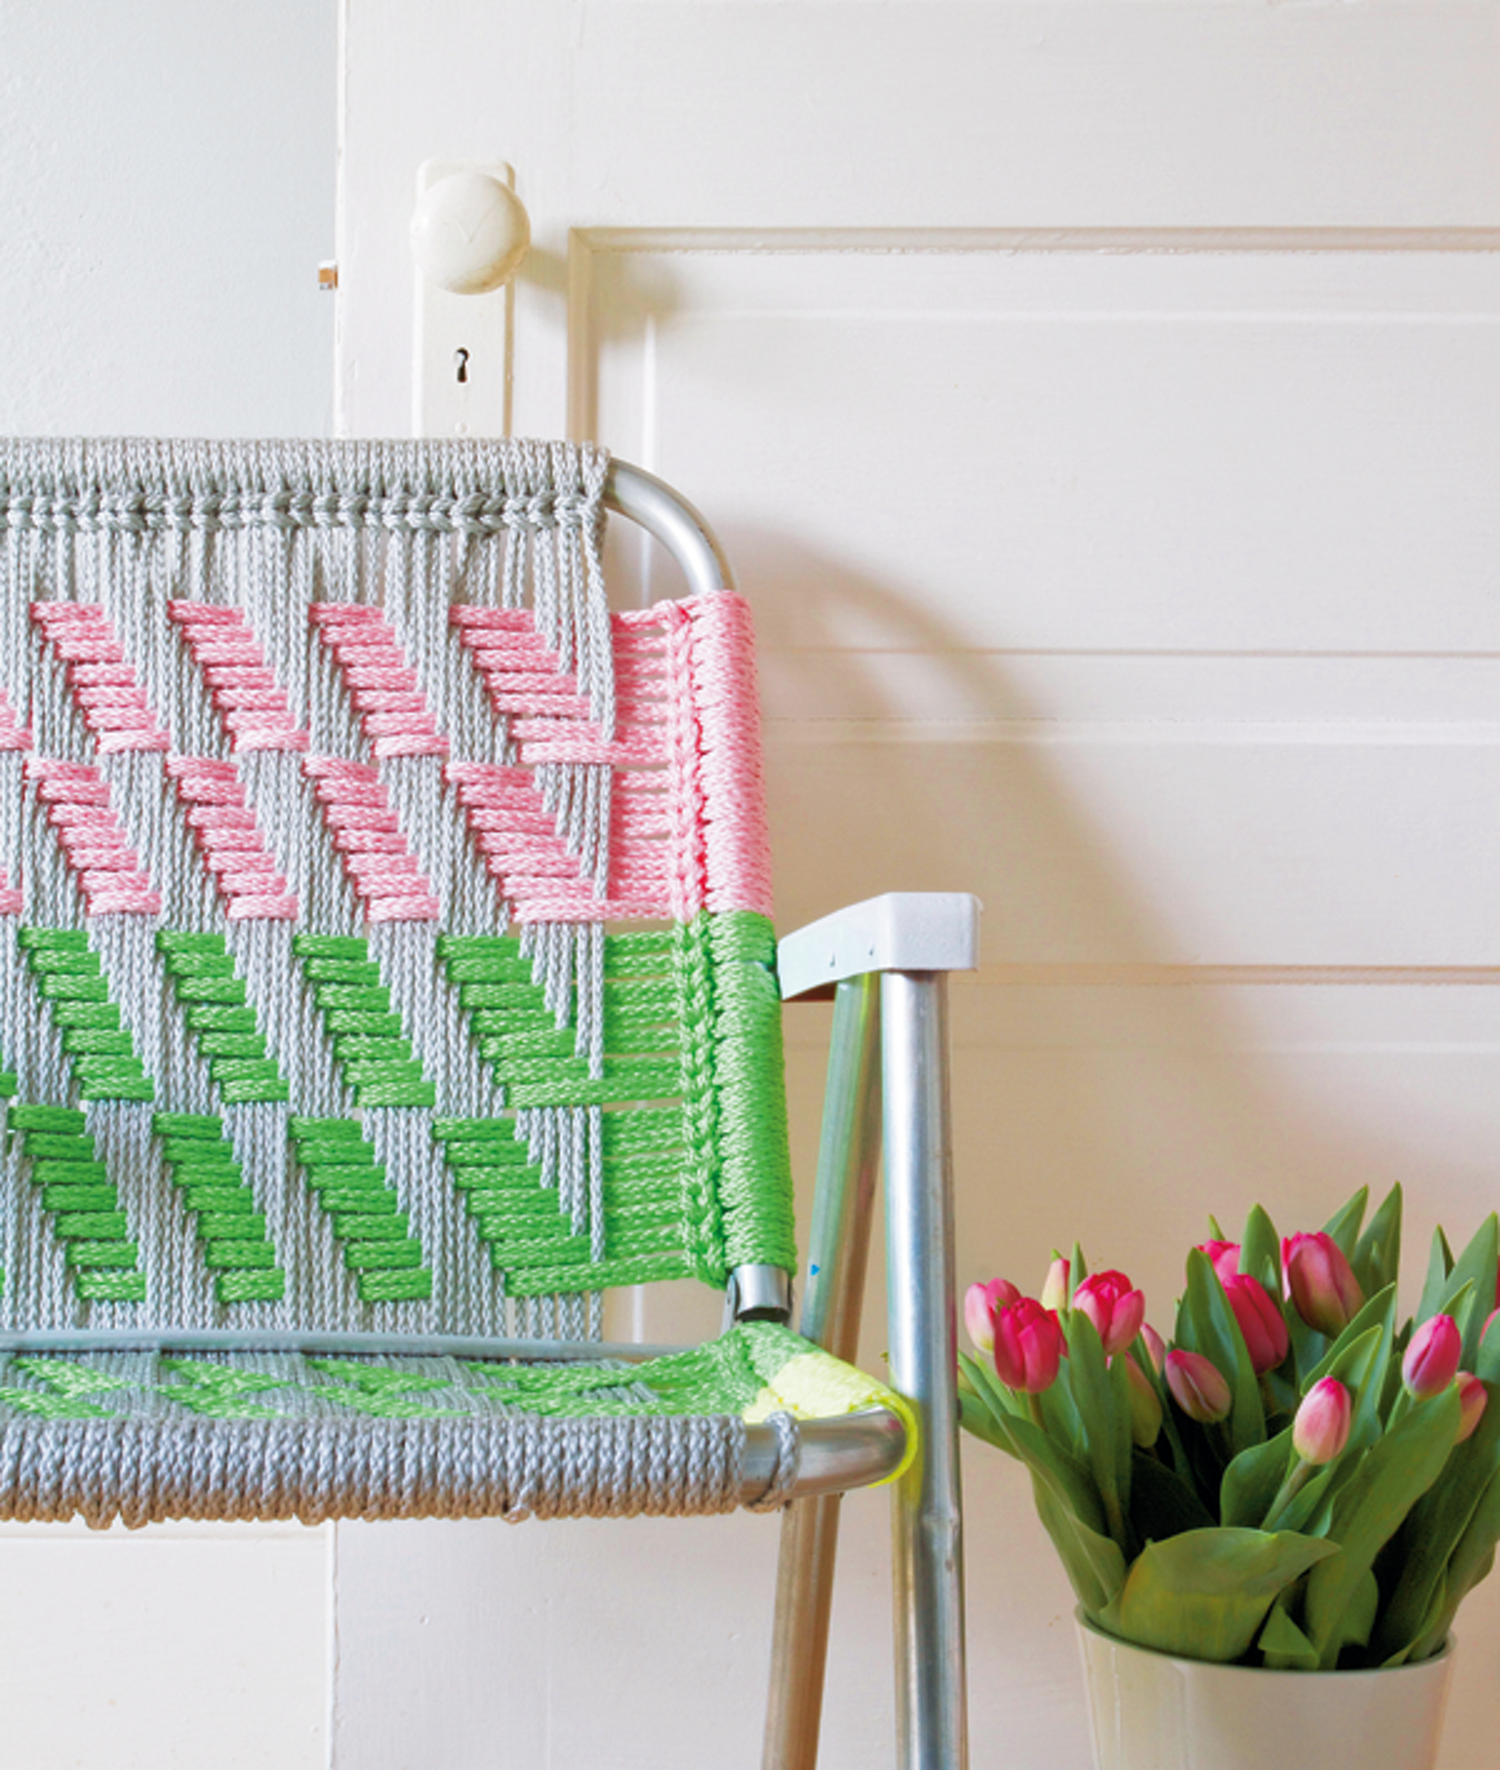 Diy Decor Trend Colorful Woven Chairs For Summer With